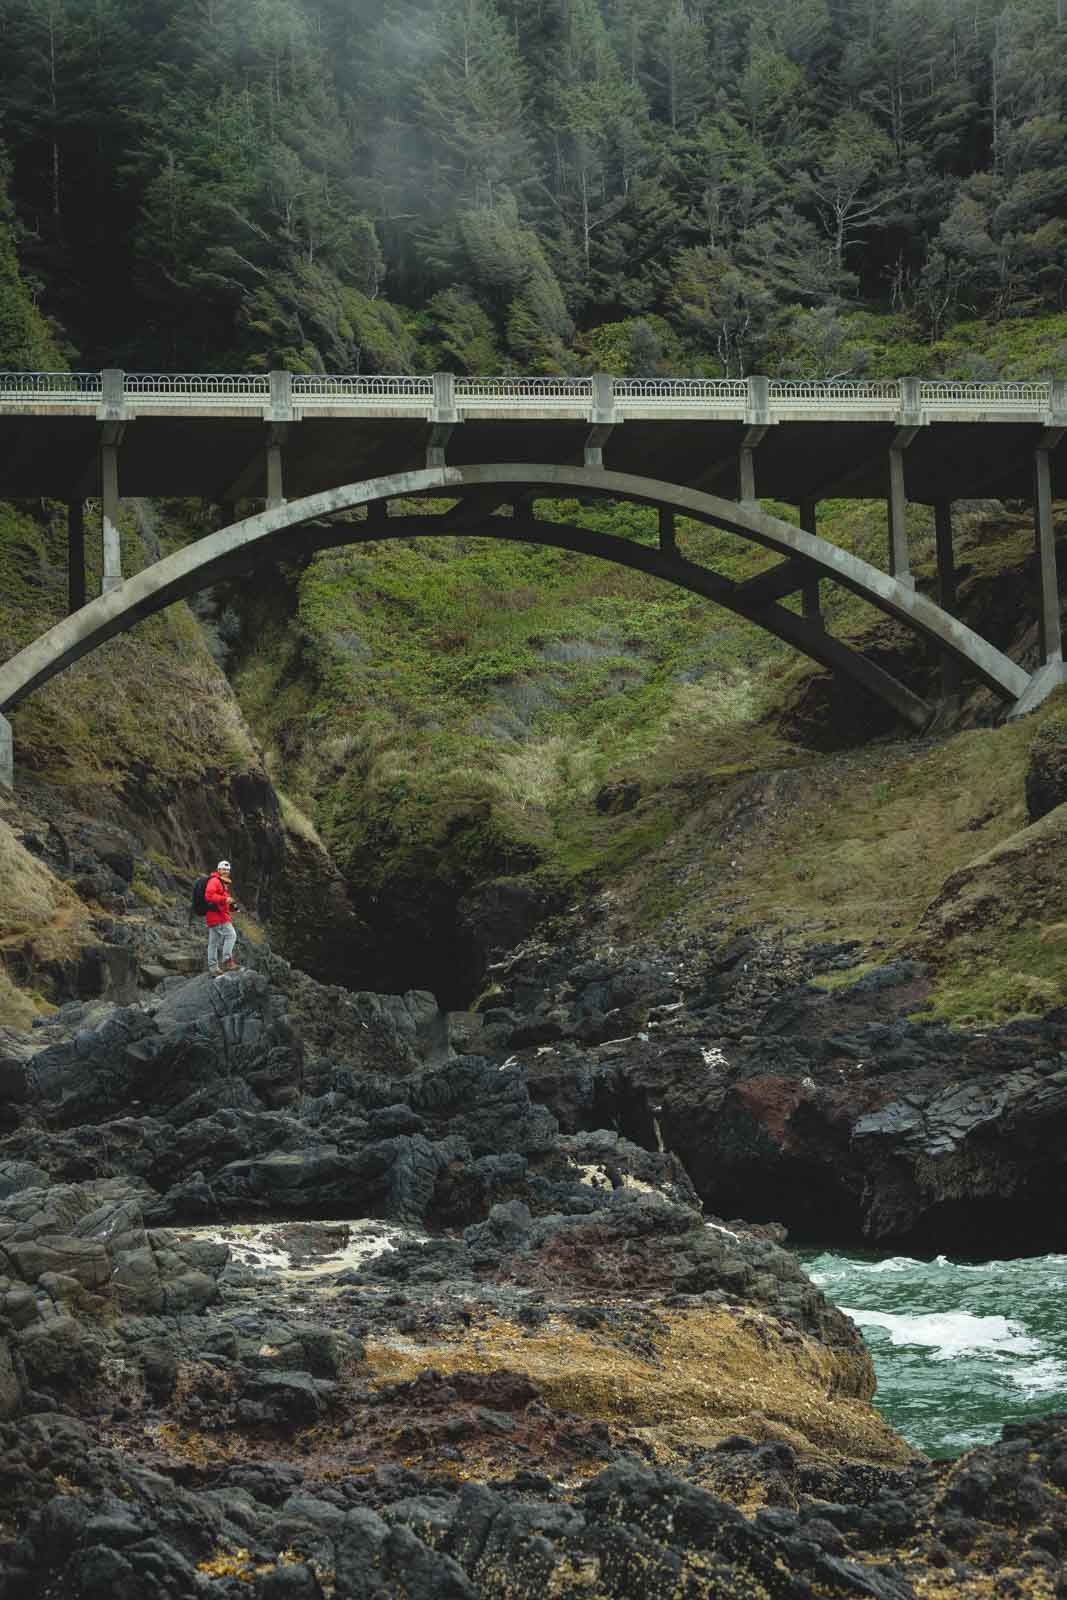 Thor's Well Bridge with person standing on rock in foreground. Near Heceta Head Lighthouse, one of the top Oregon Lighthouses